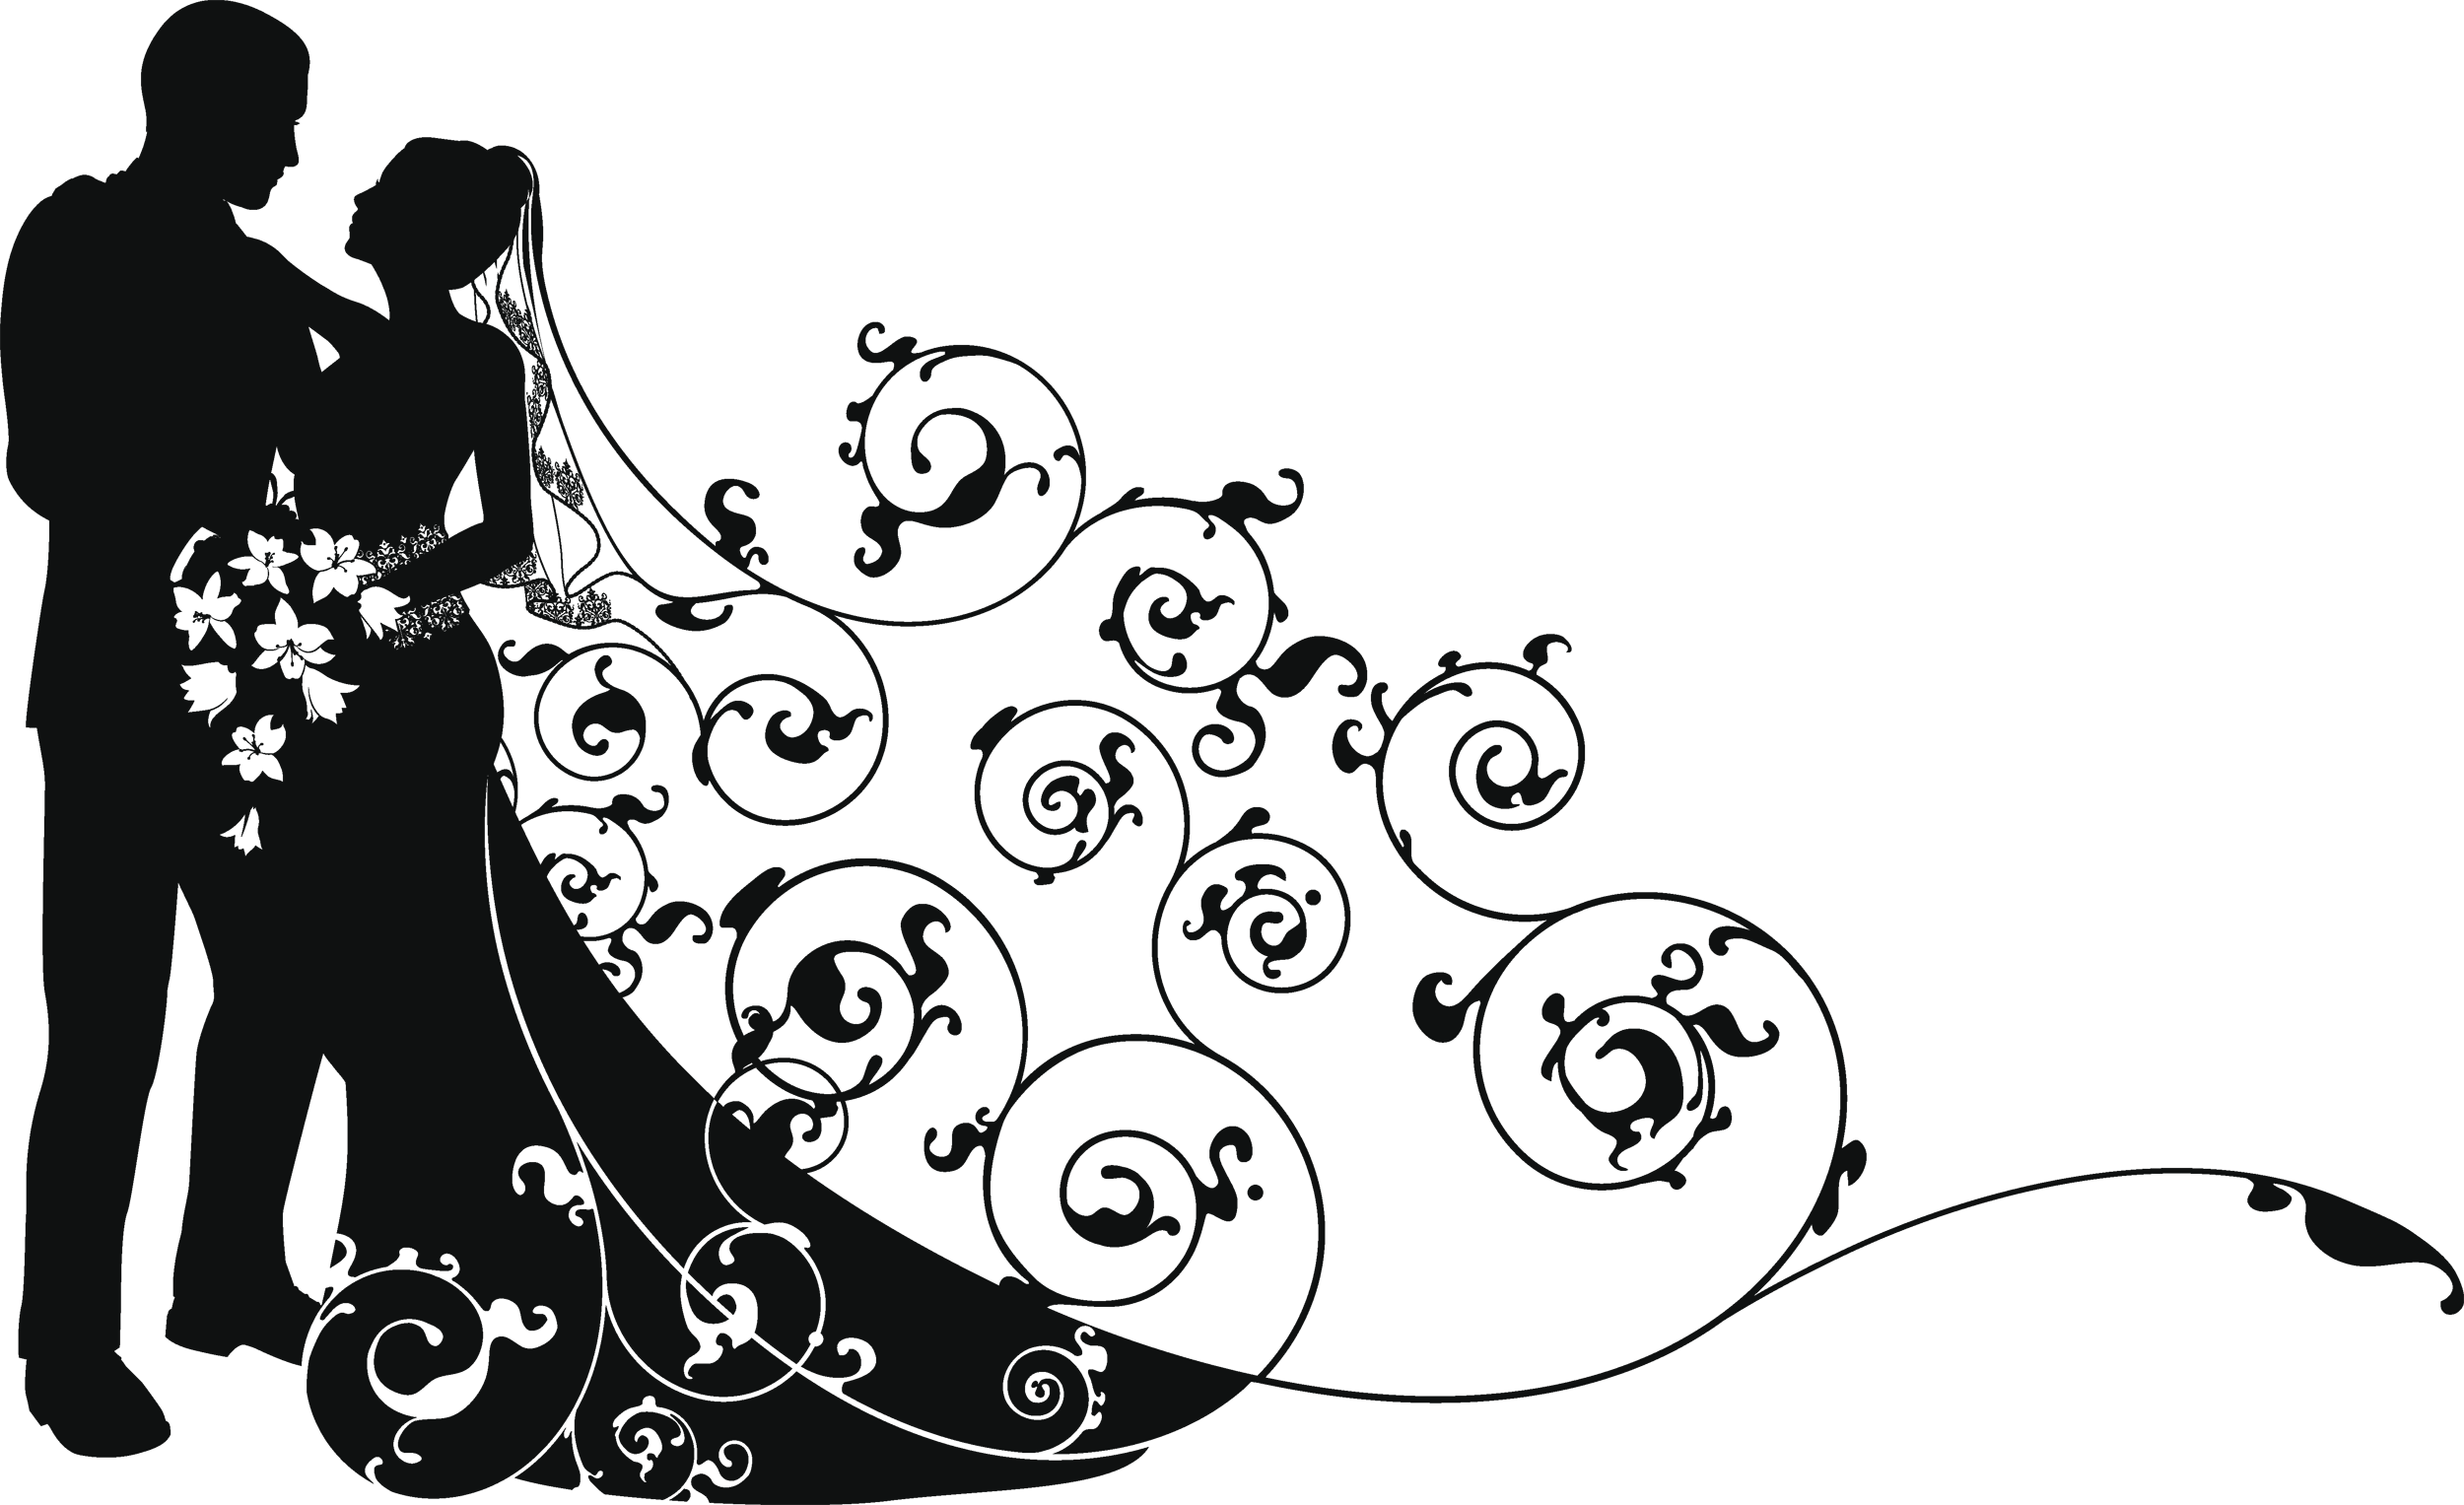 Wedding couple silhouette clipart png image library download Pin by Анелия Ганева on wedding art | Bride, groom ... image library download